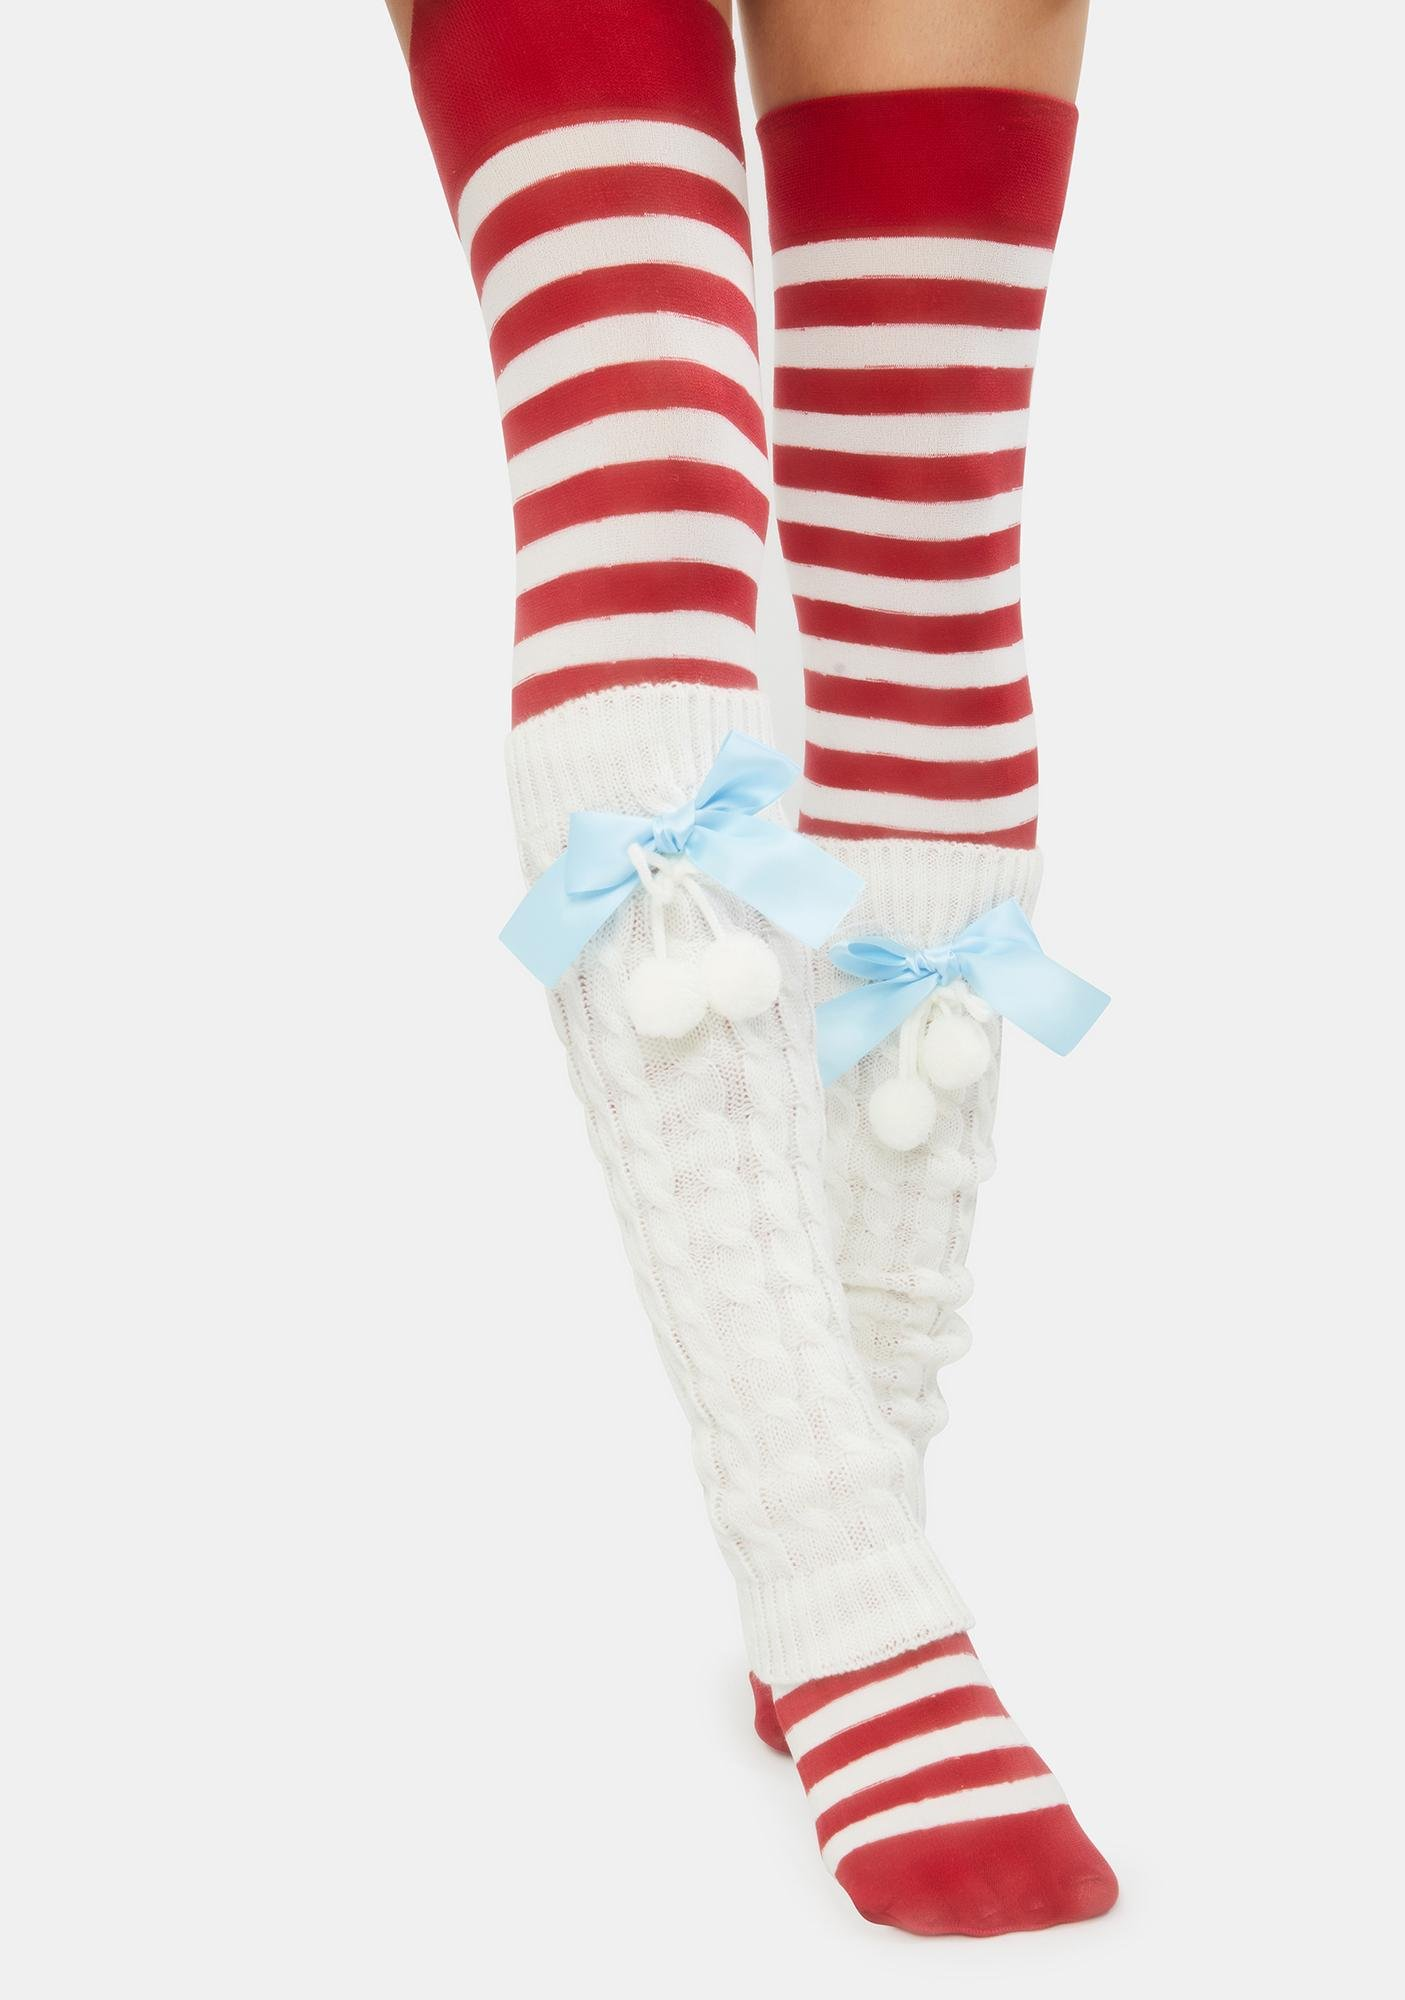 Icy Candy Cane Knitted Legwarmers